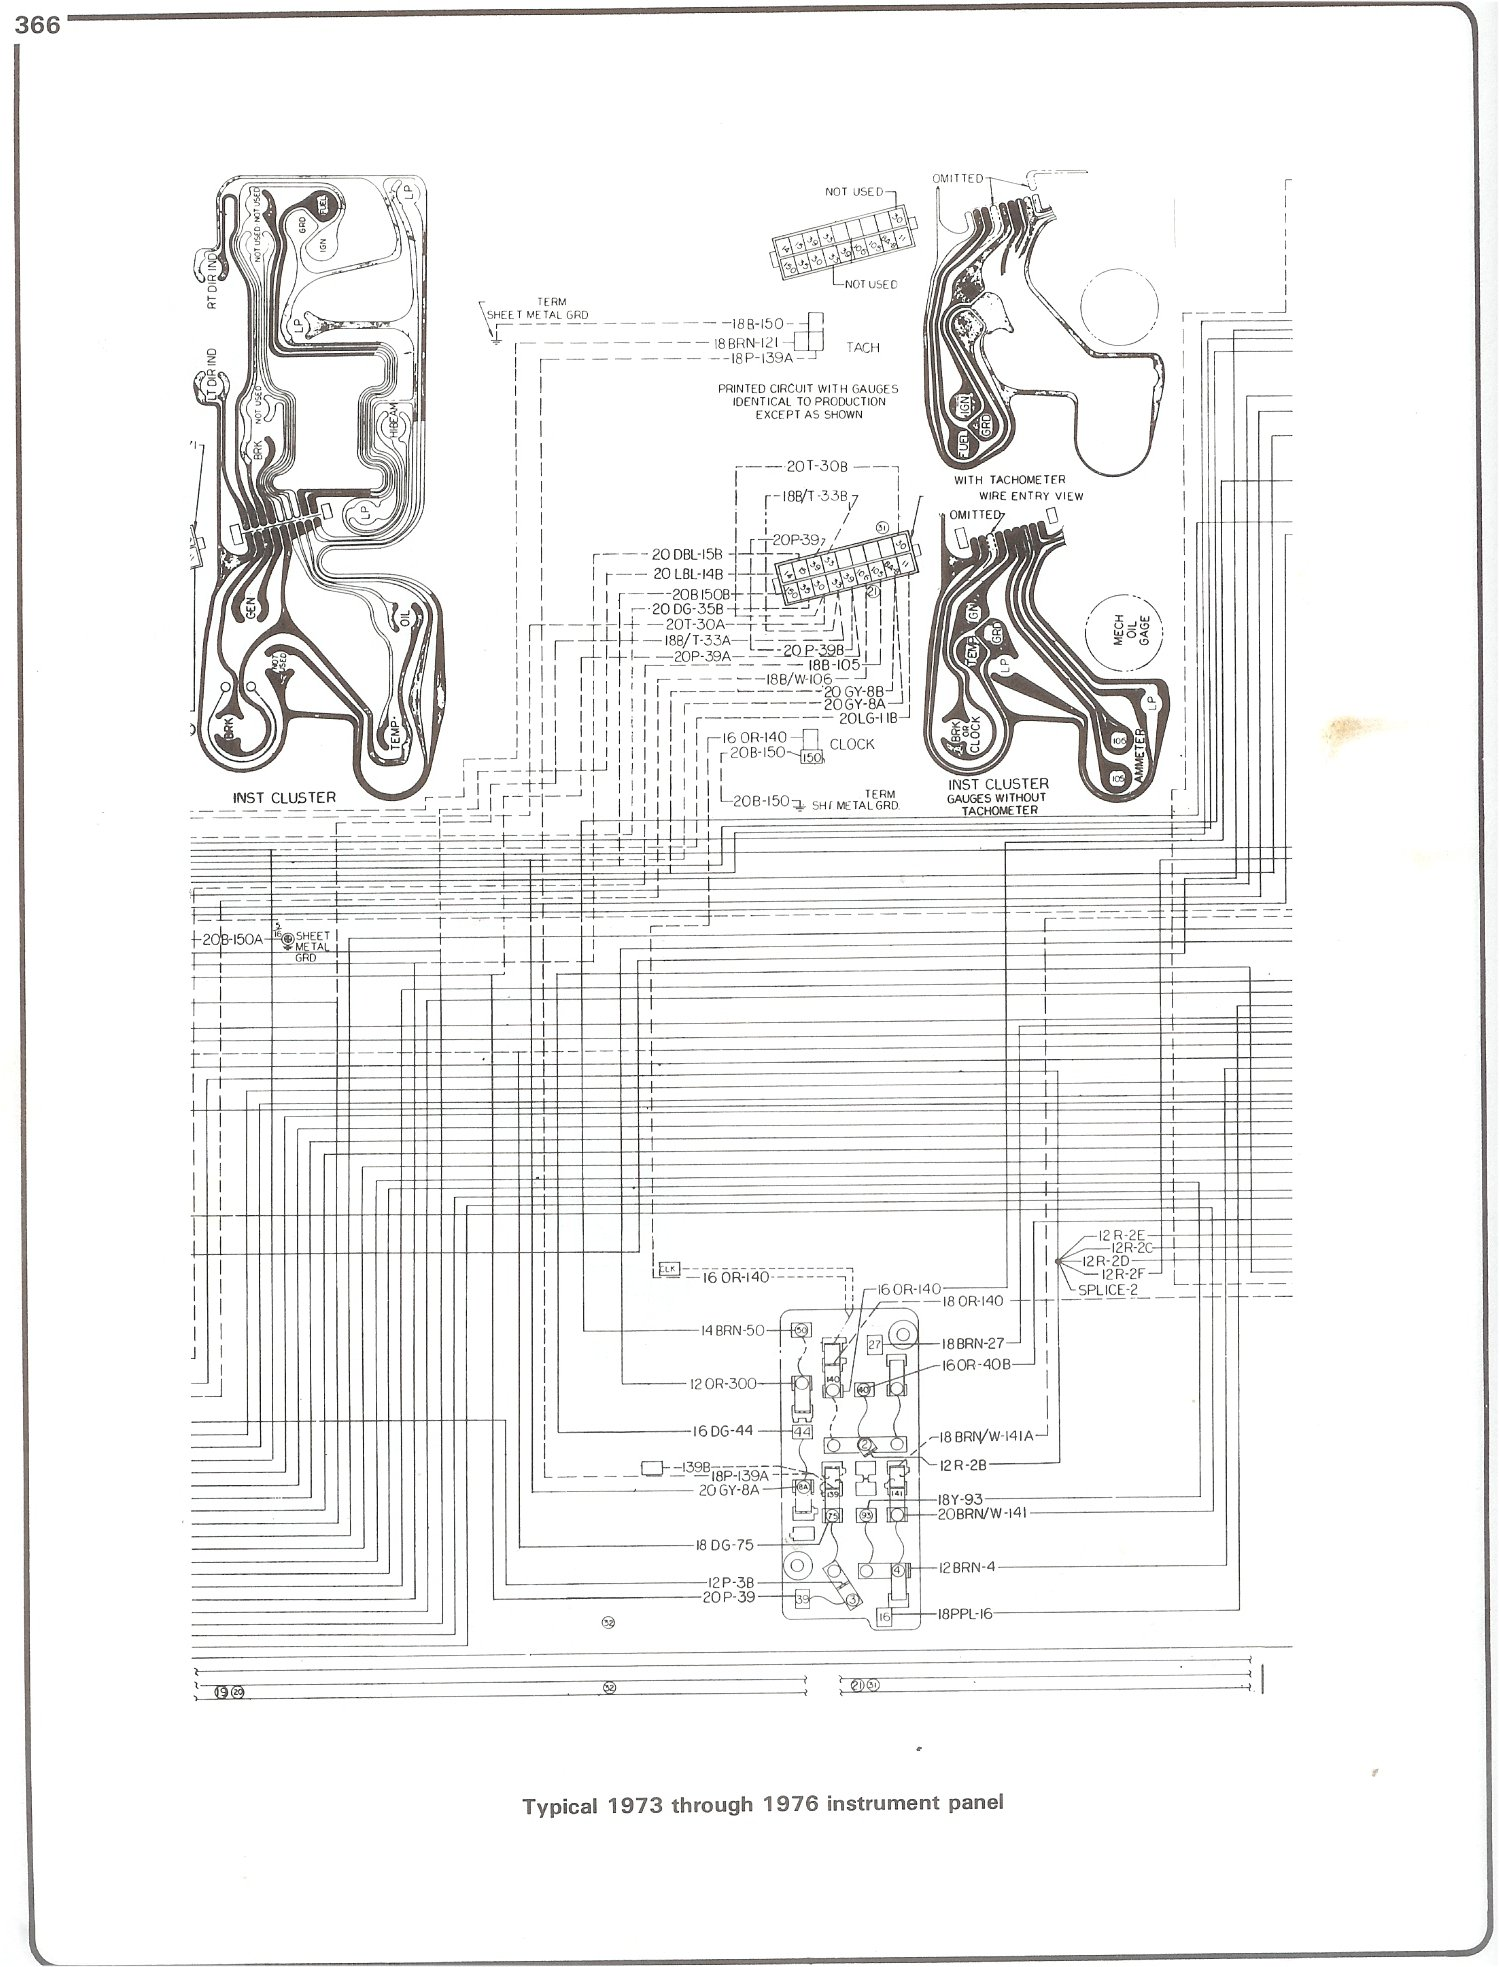 73 76_instrument complete 73 87 wiring diagrams truck wiring schematics at bayanpartner.co